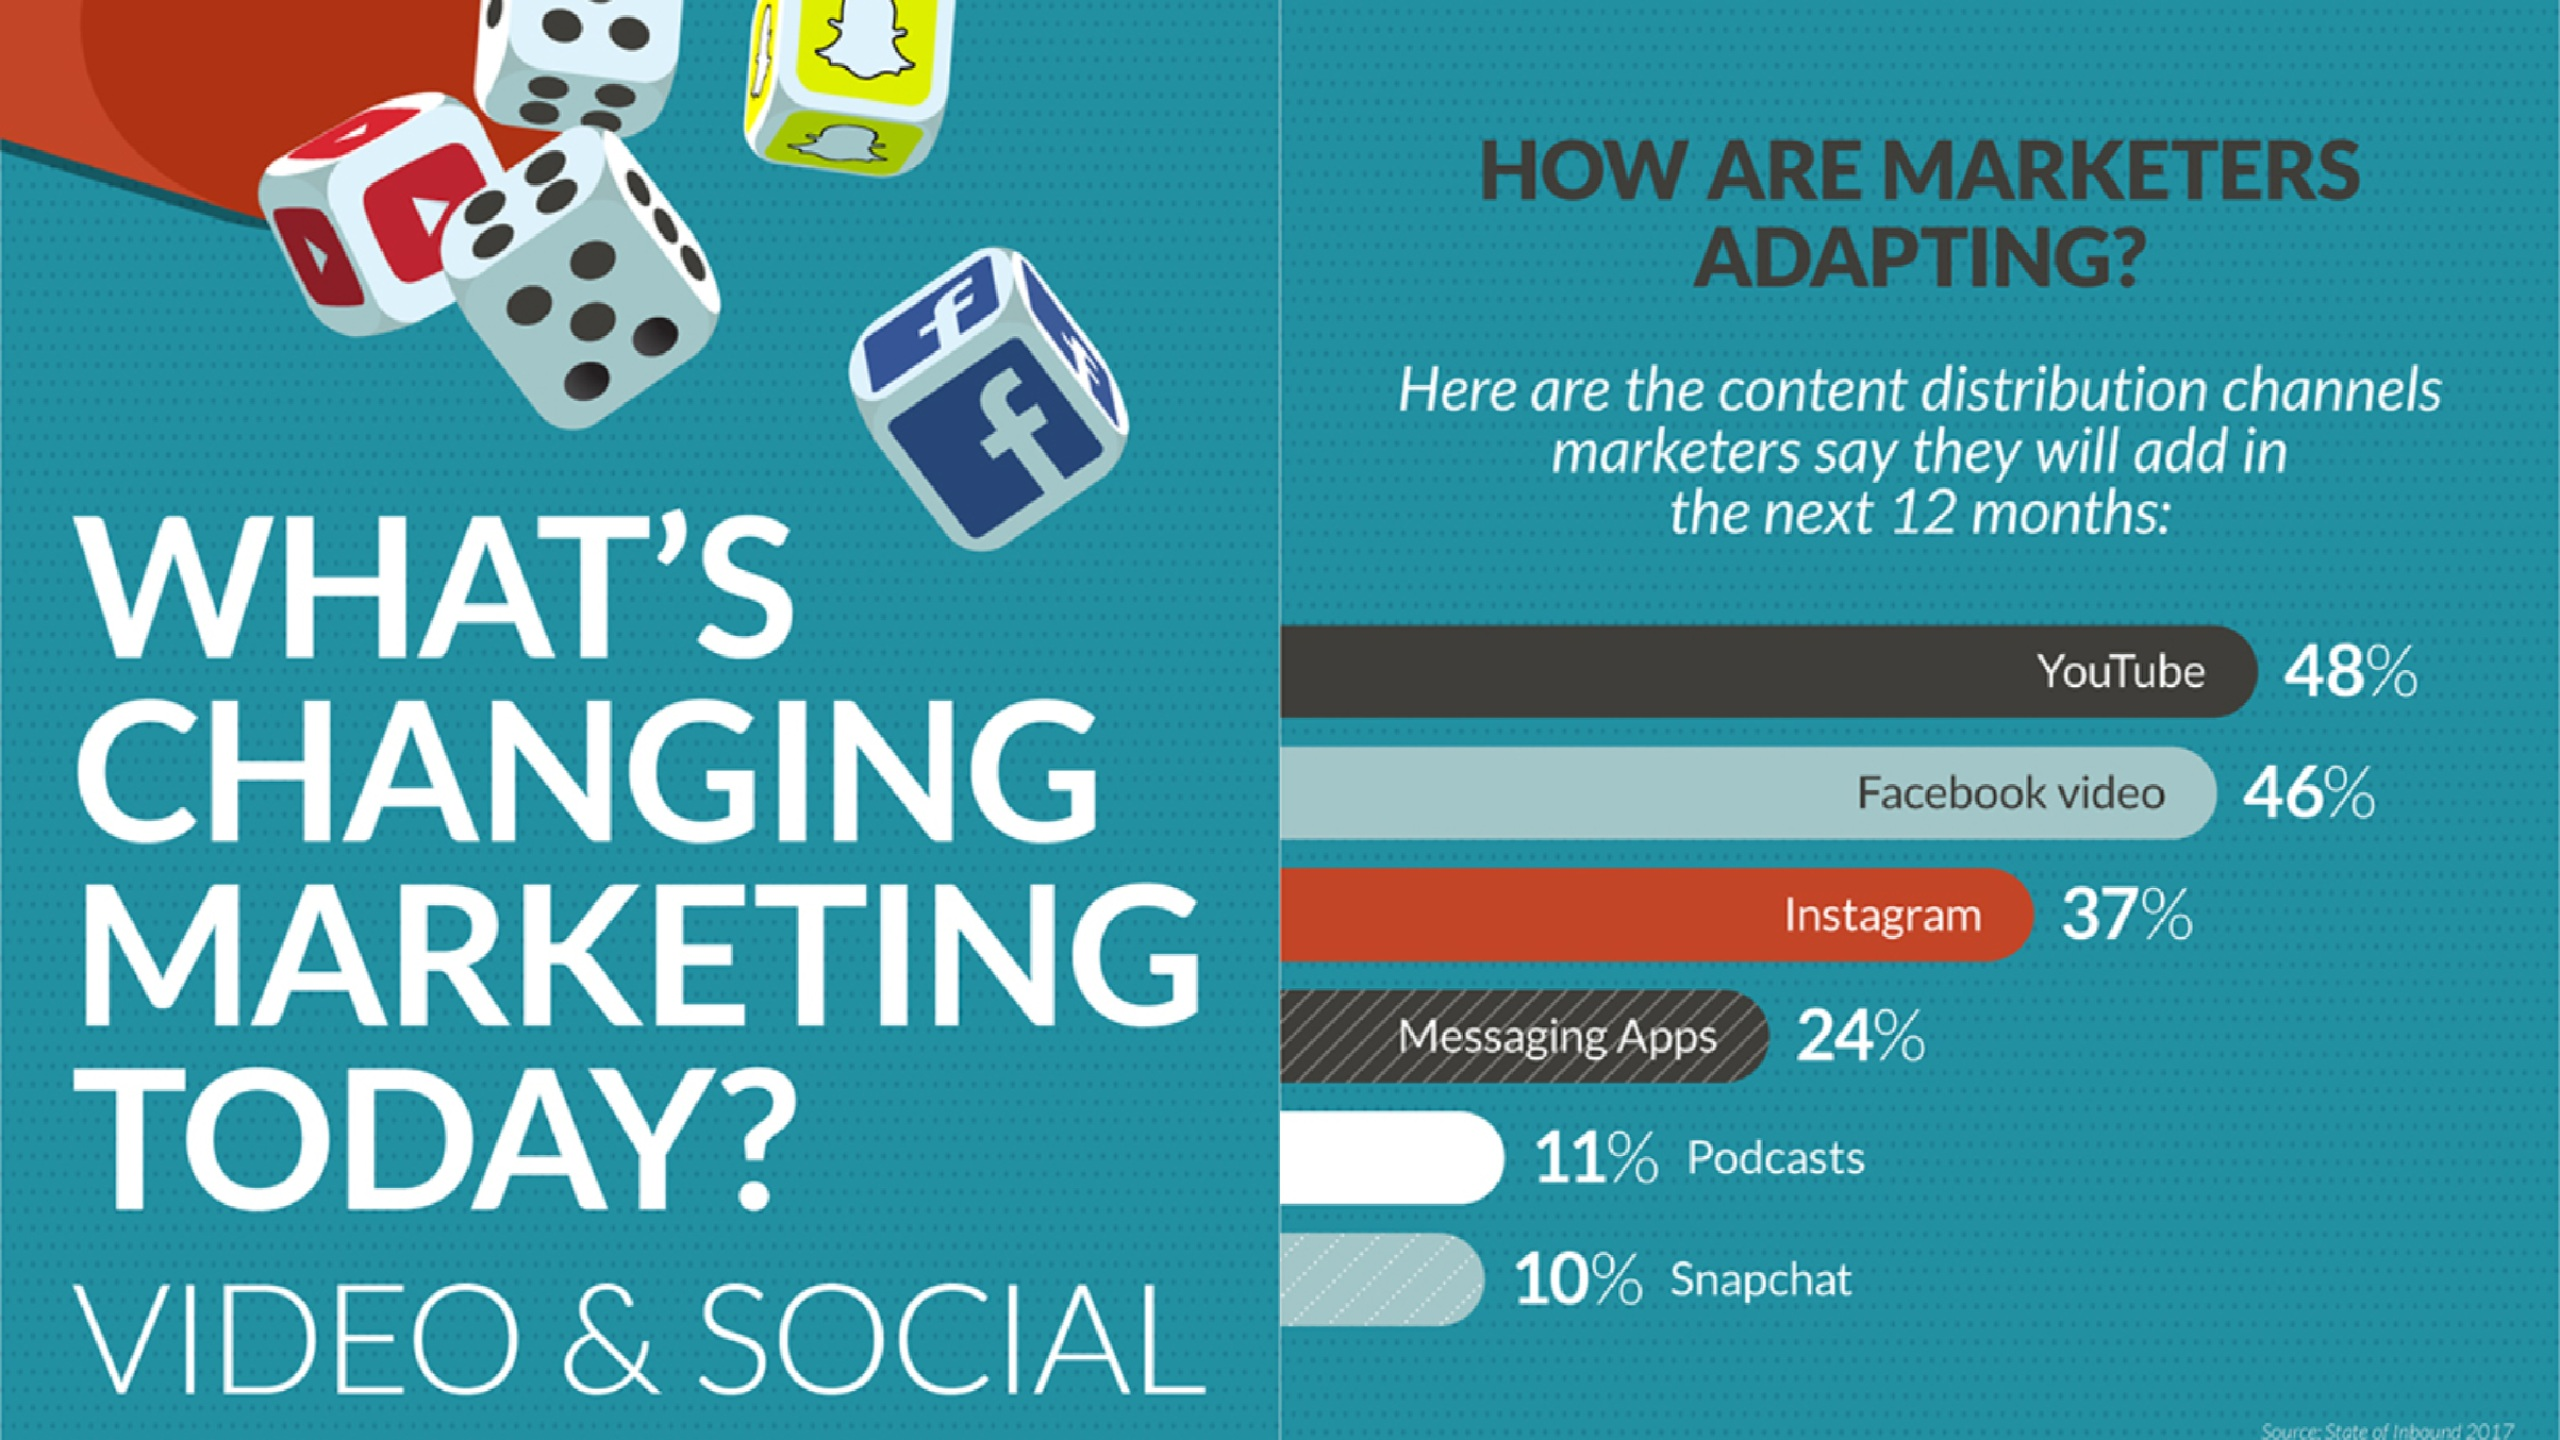 What's Changing Marketing Today? marketing infographic